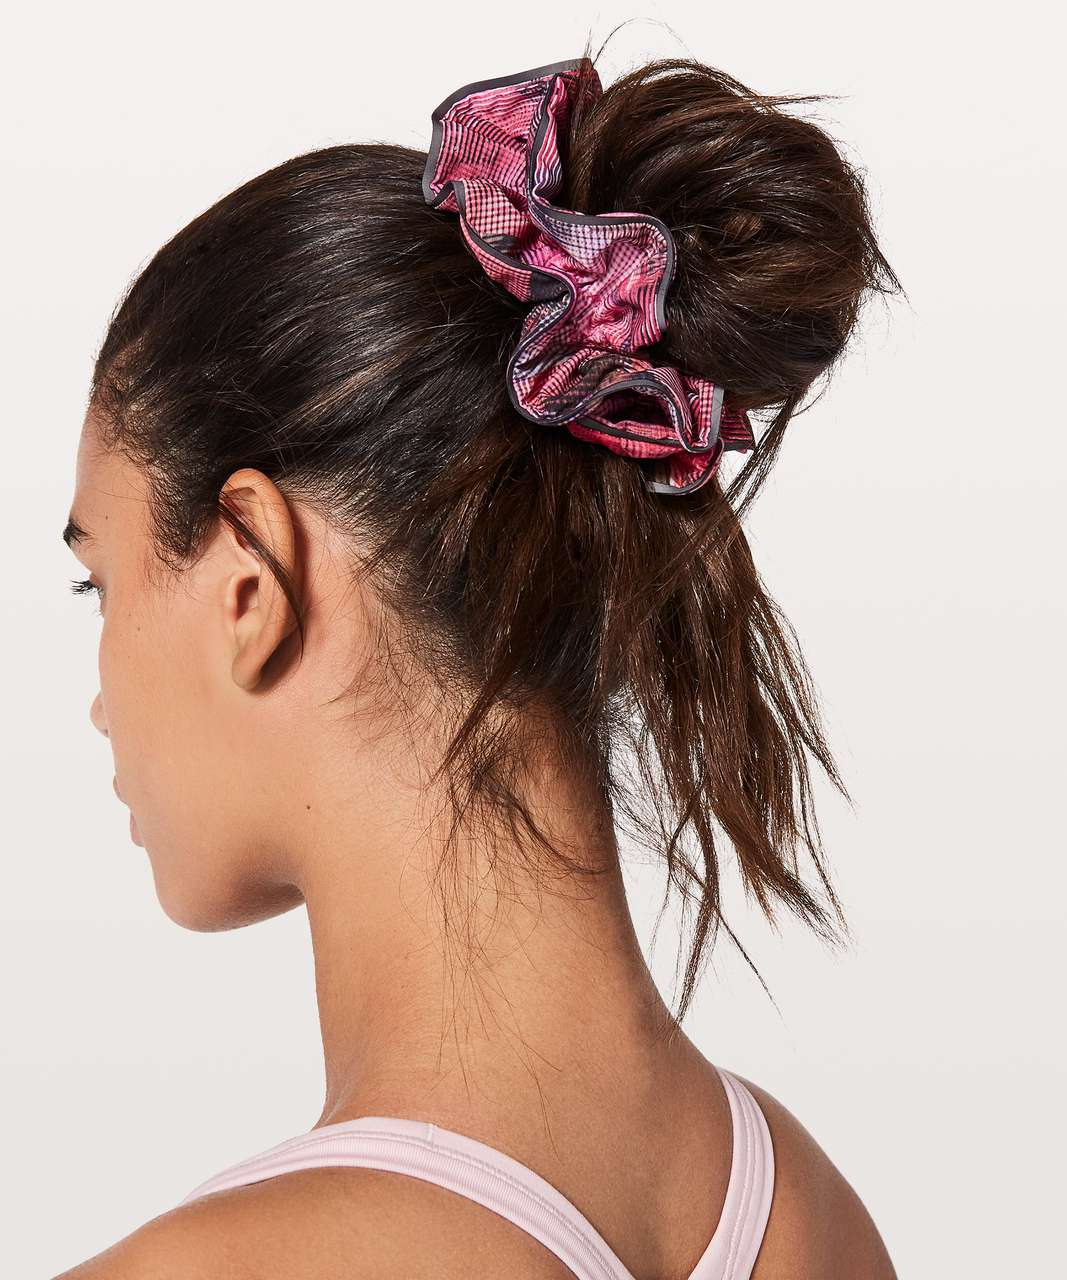 Lululemon Light Locks Scrunchie - Sun Dazed Multi Pink